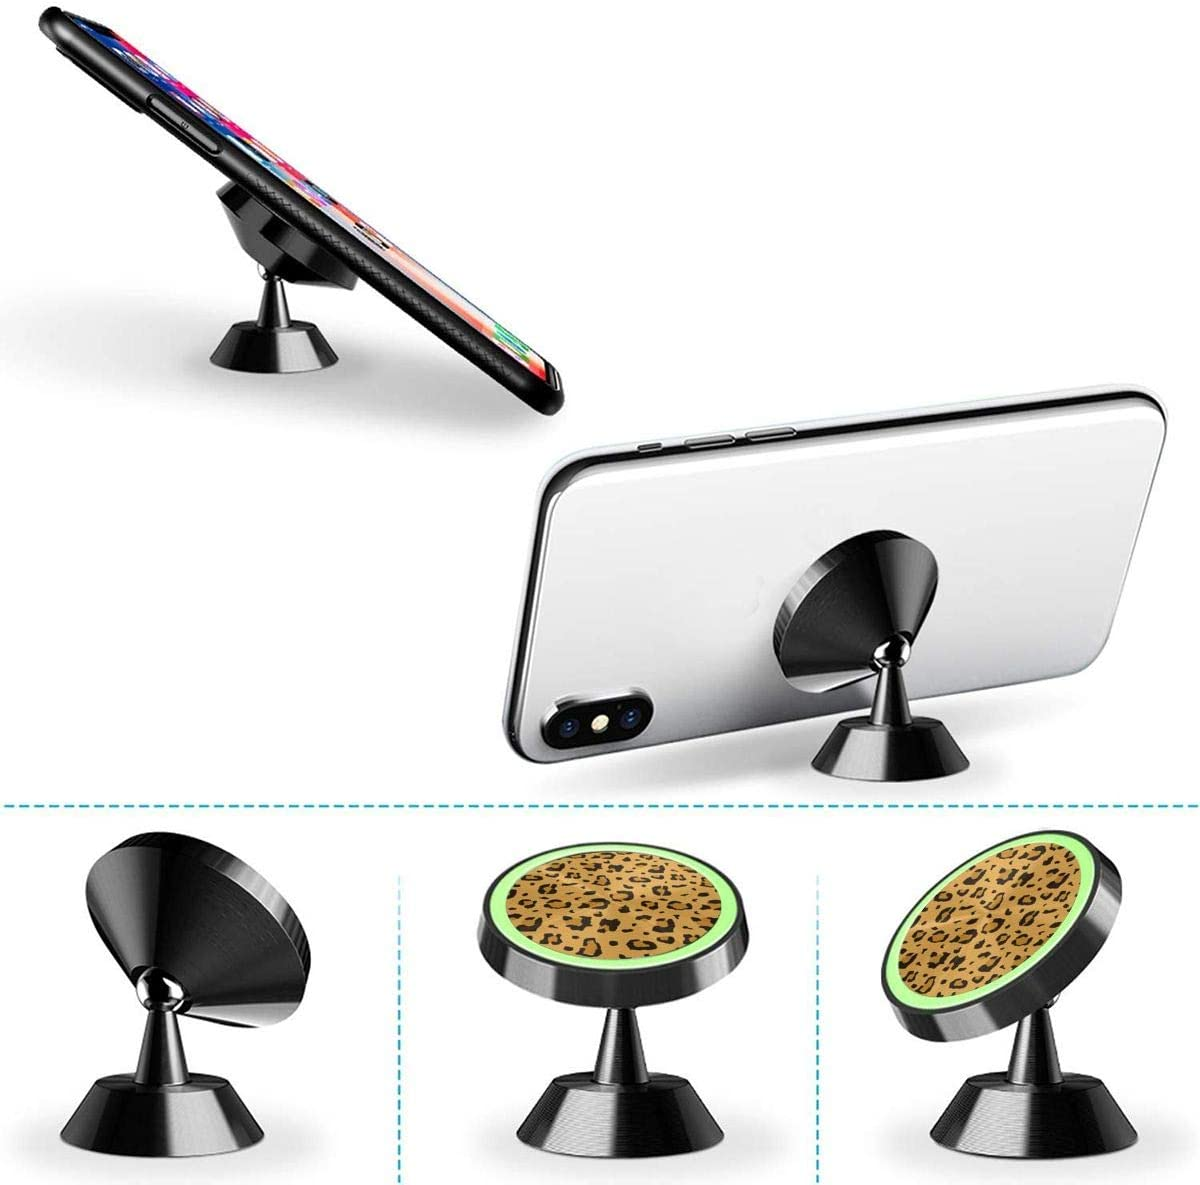 Car Phone Mount Magnetic African Cheetah Leopard Print Phone Holder for Car Rotatable Dashboard Phone Holder Cradle Compatible All Smartphones